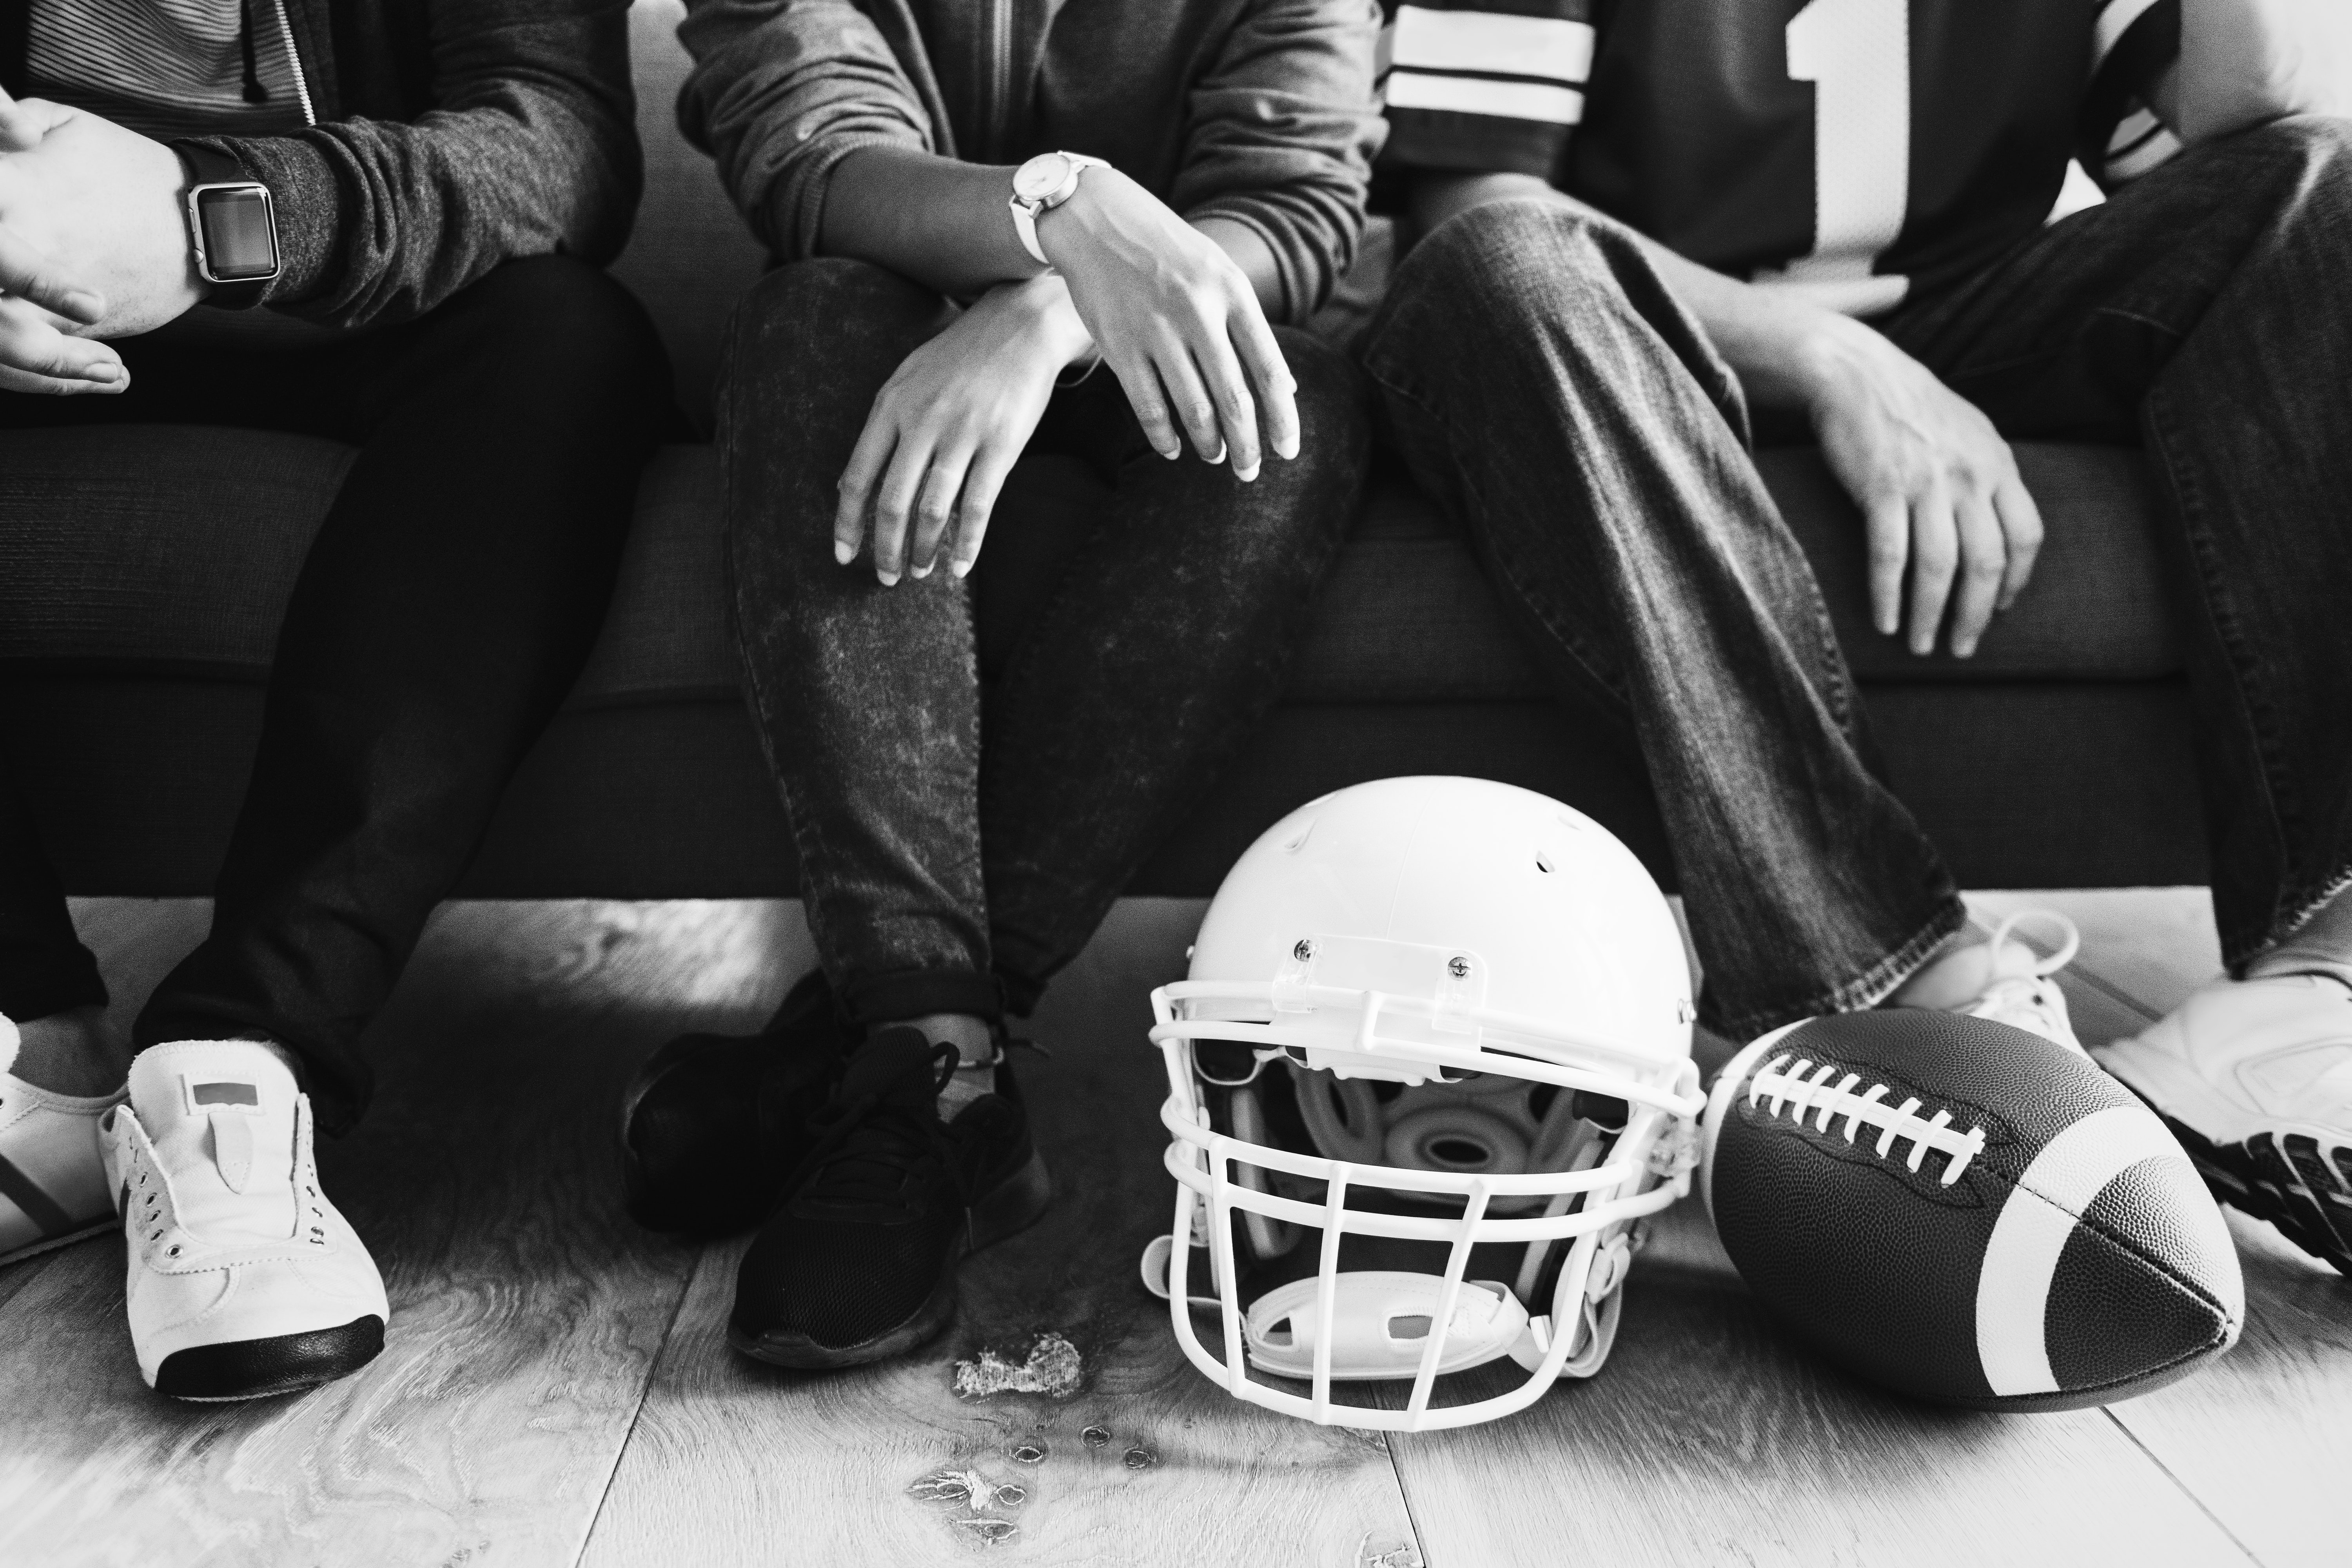 grayscale photo of people sitting on bench near football helmet